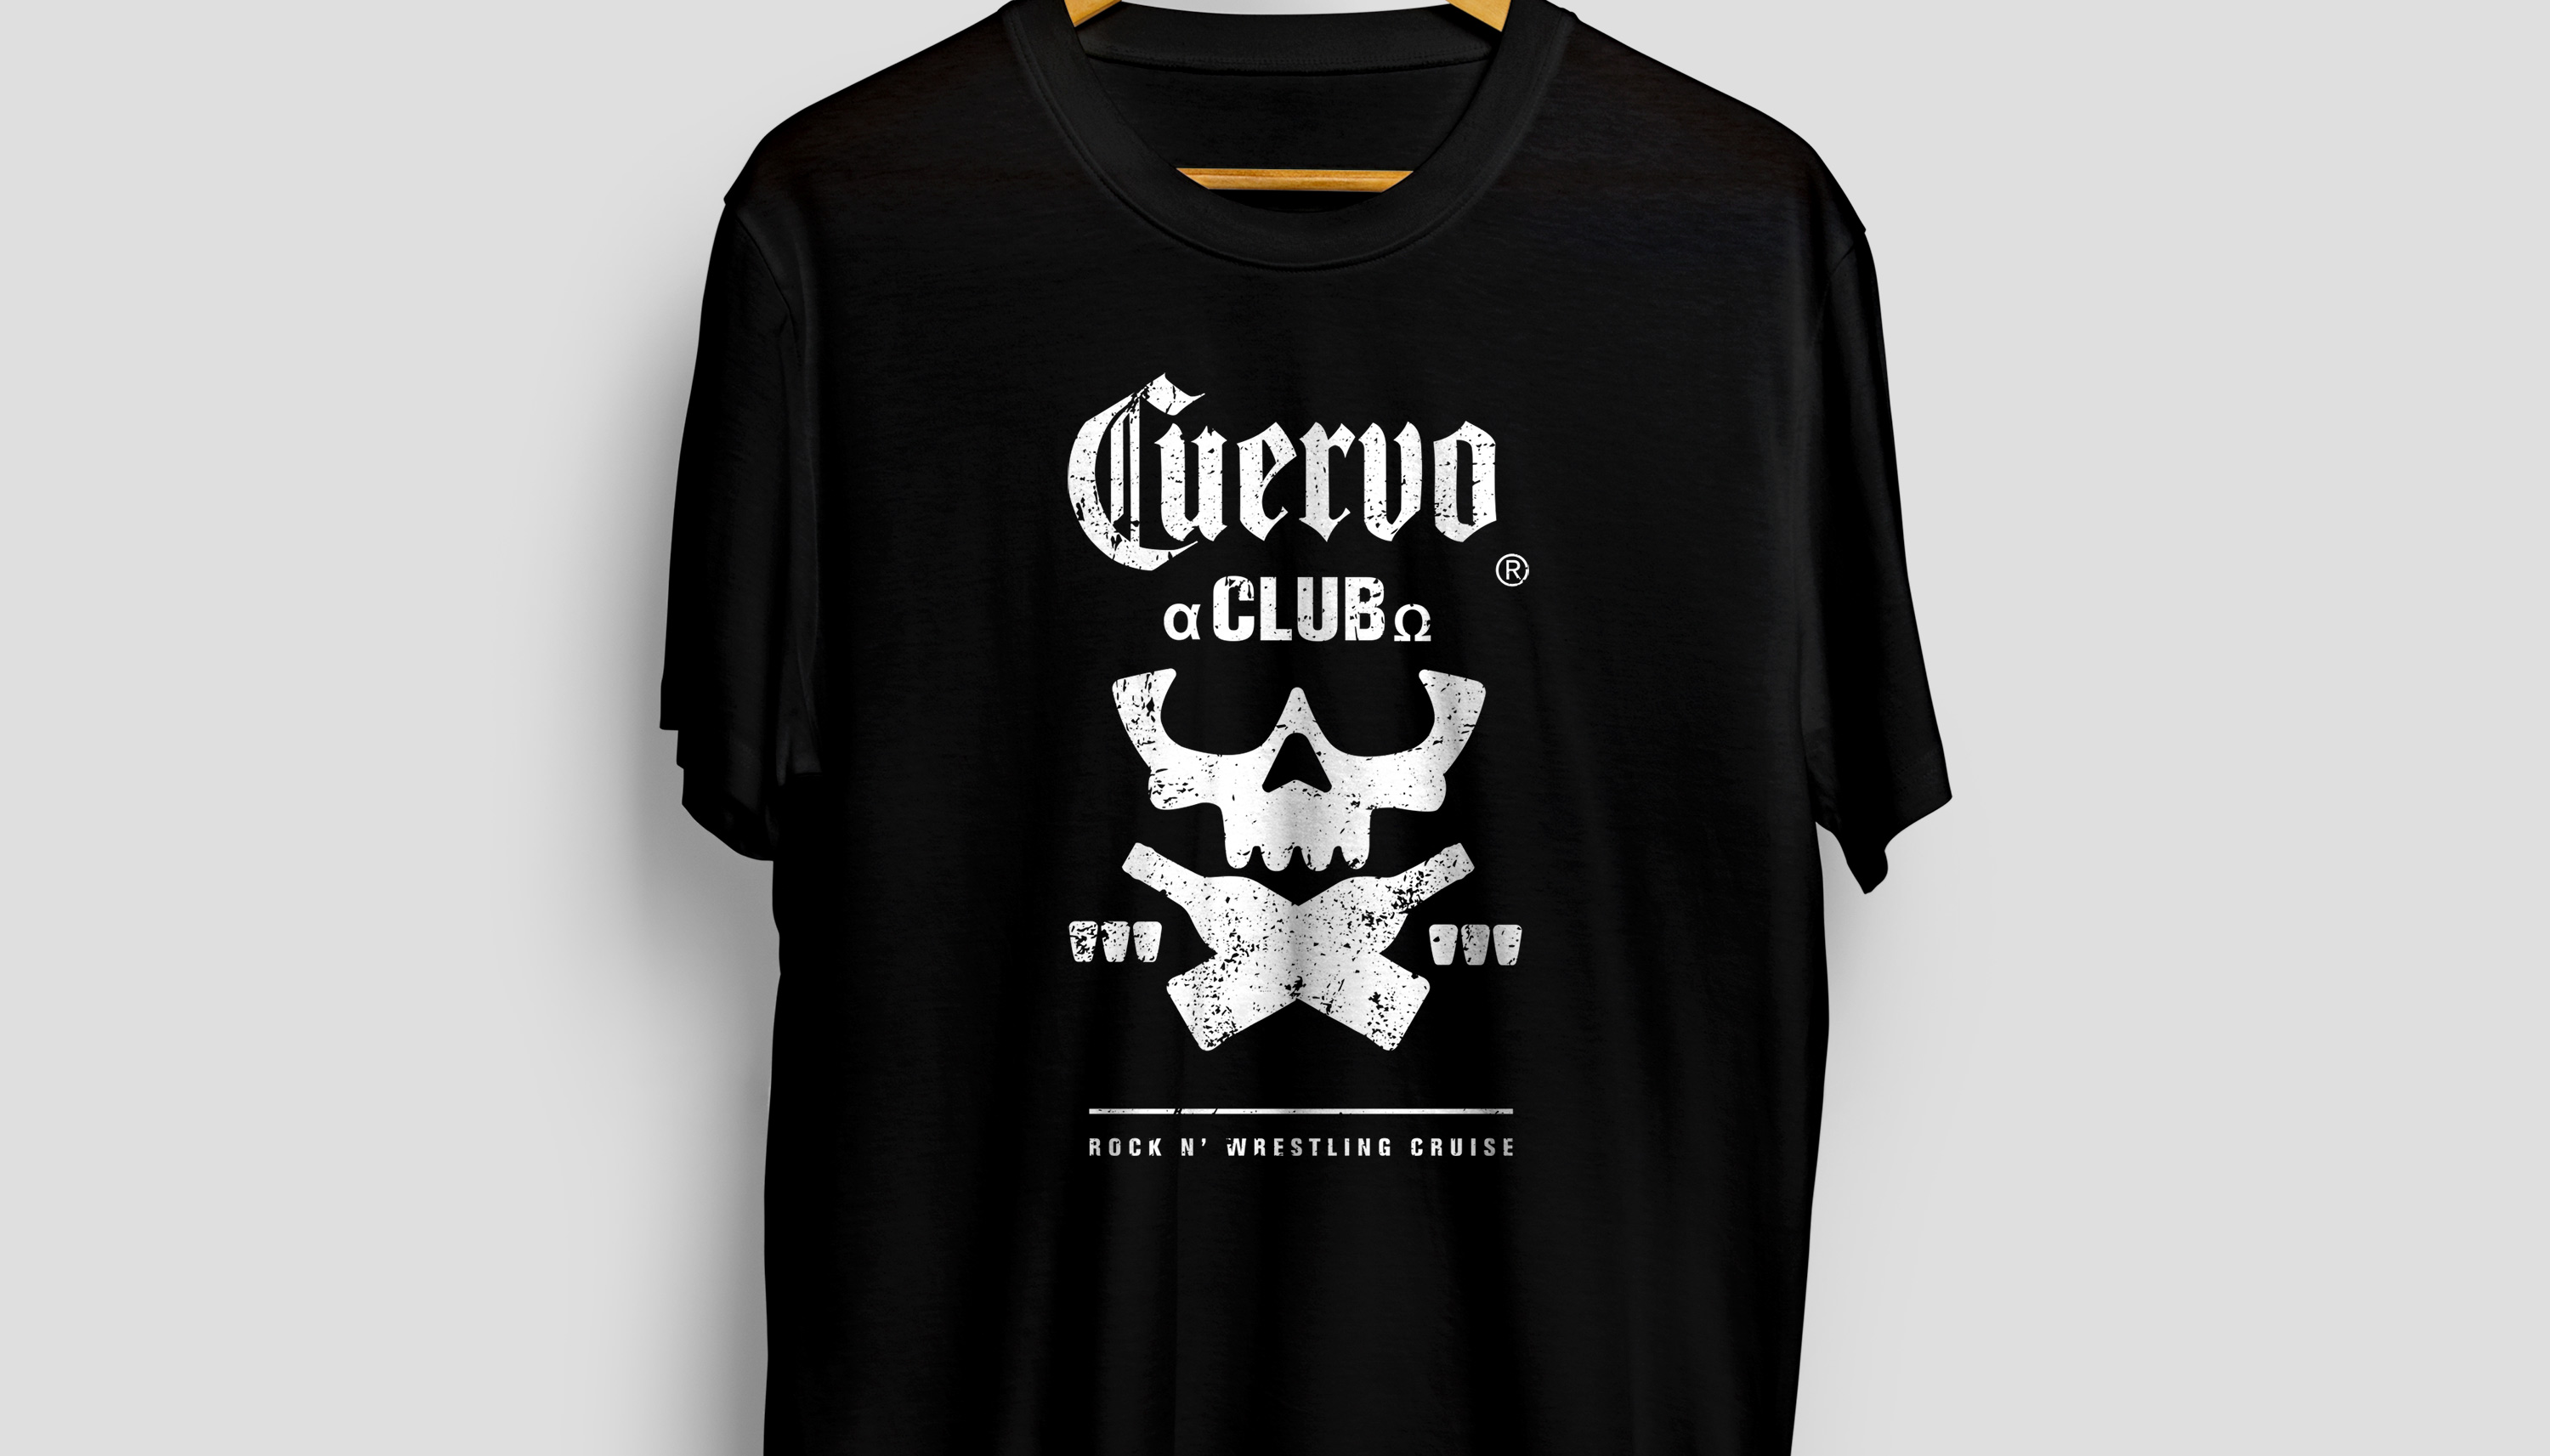 """Cuervo Club T-Shirt design for the José Cuervo Rock N' Wrestling Cruise. This design pays homage to wrestler Chris Jericho's popular Bullet Club design."""